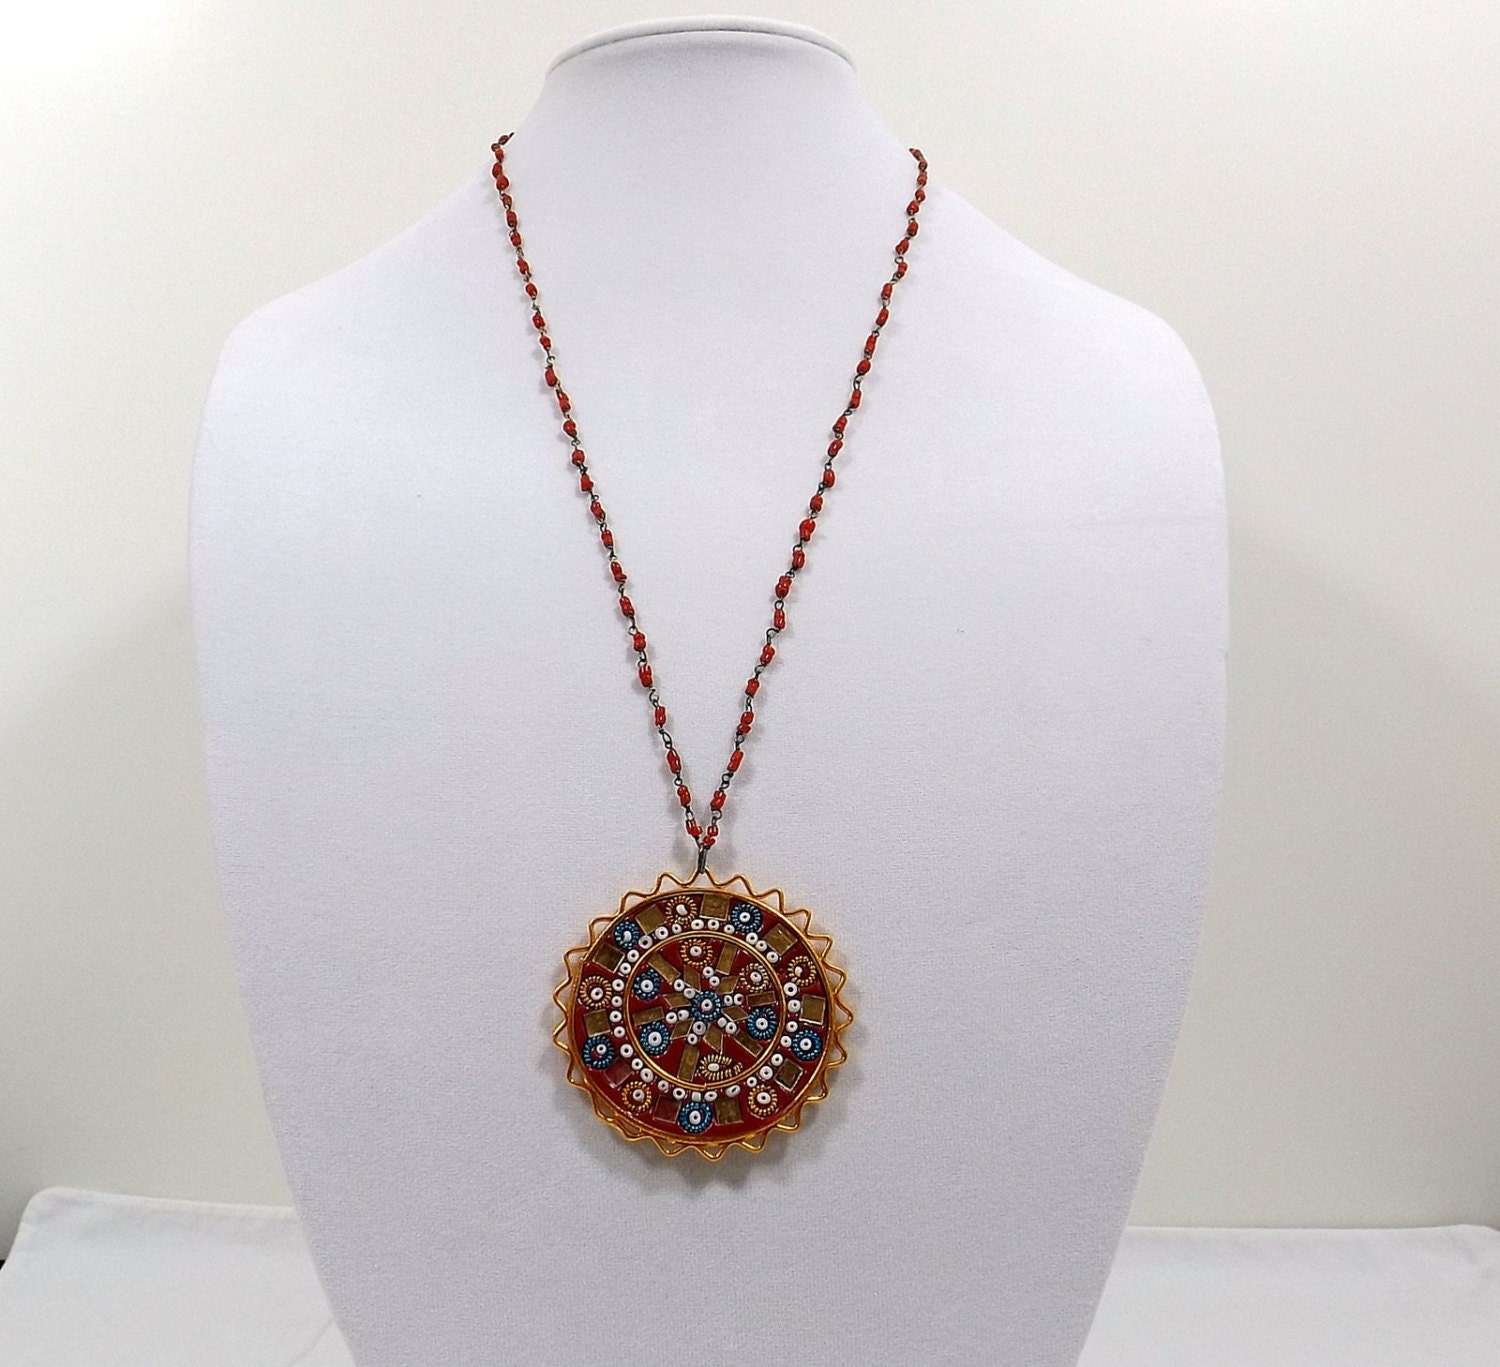 india bead necklace with mosaic pendant